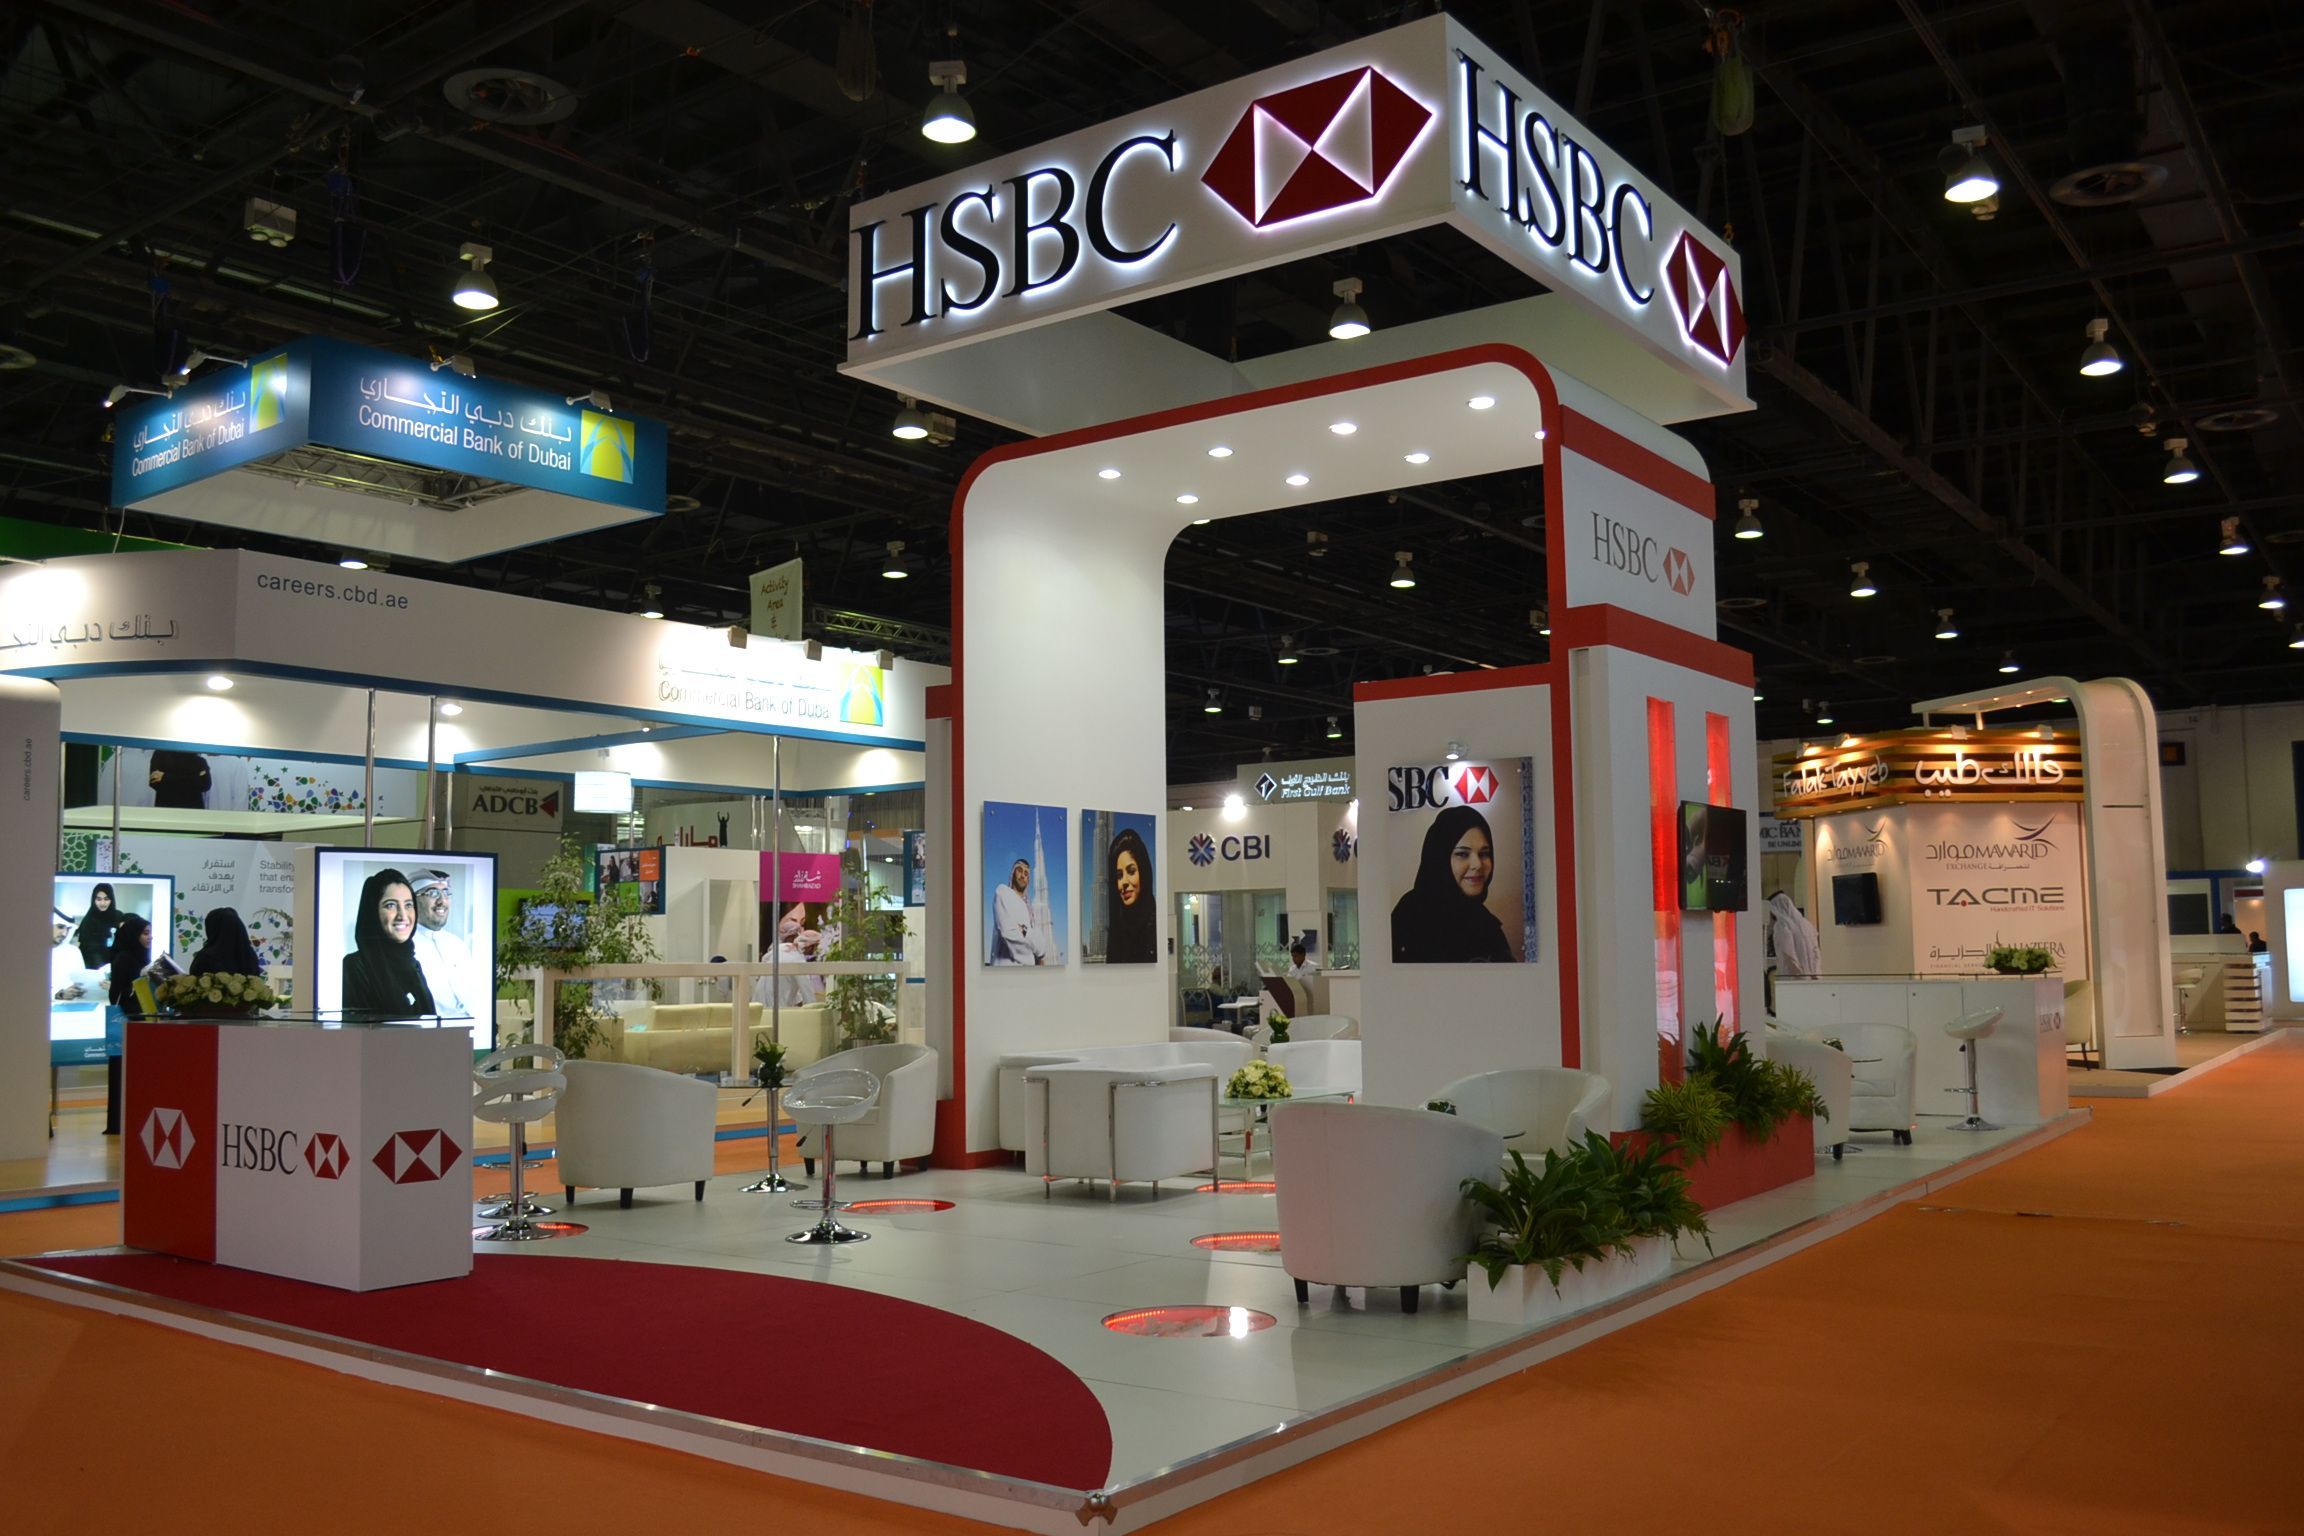 Exhibition Stand Jobs Dubai : Hsbc booth dubai career fair